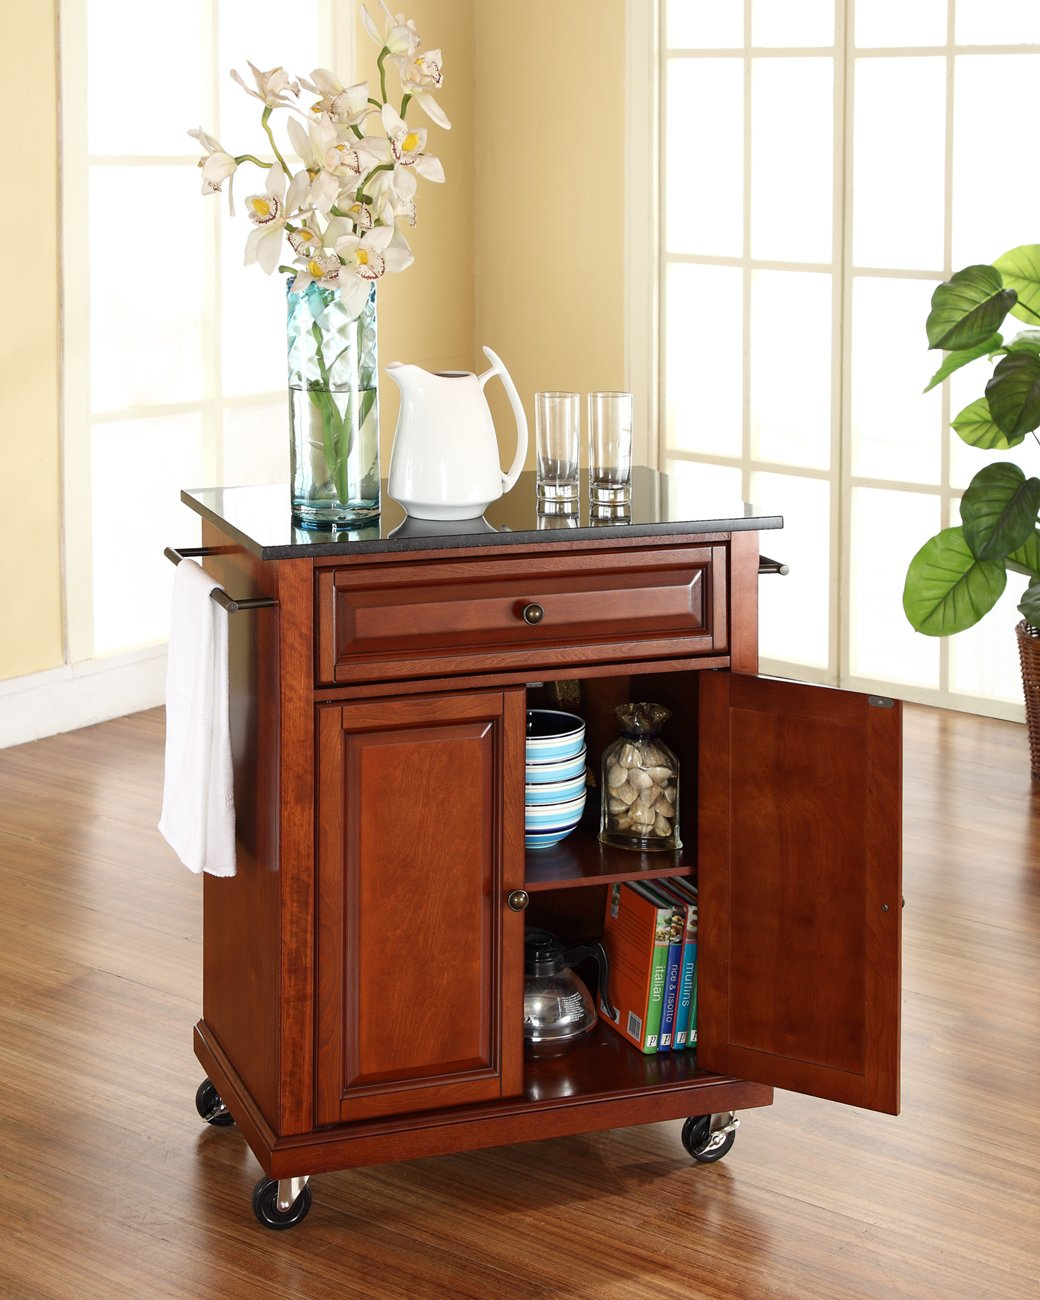 Crosley Furniture Cuisine Kitchen Island with Solid Black Granite Top - Classic Cherry